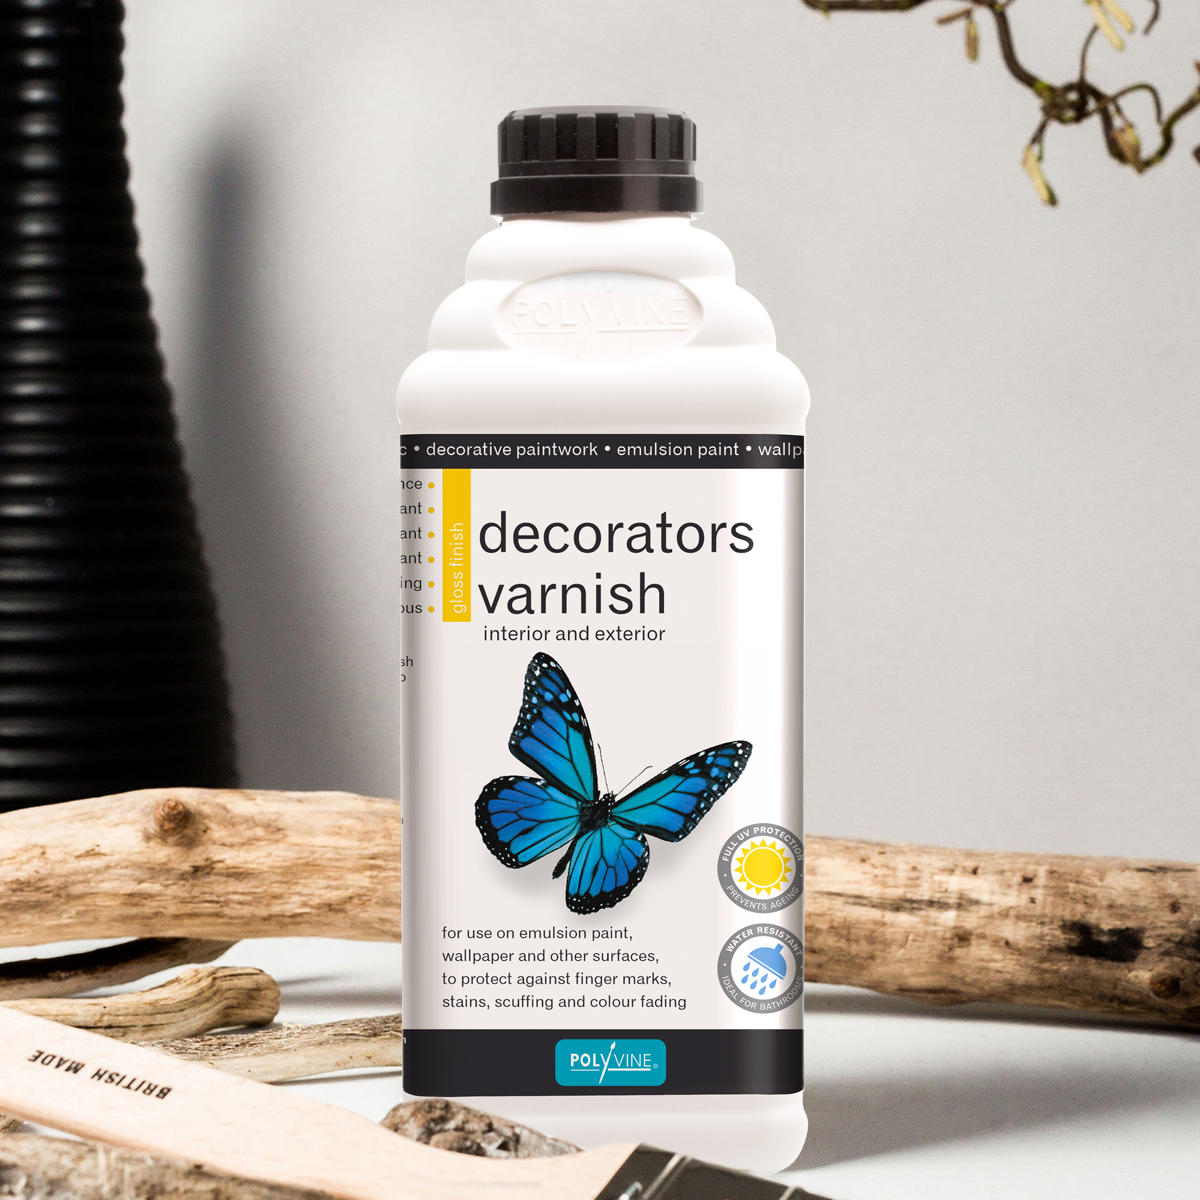 polyvine decorators varnish